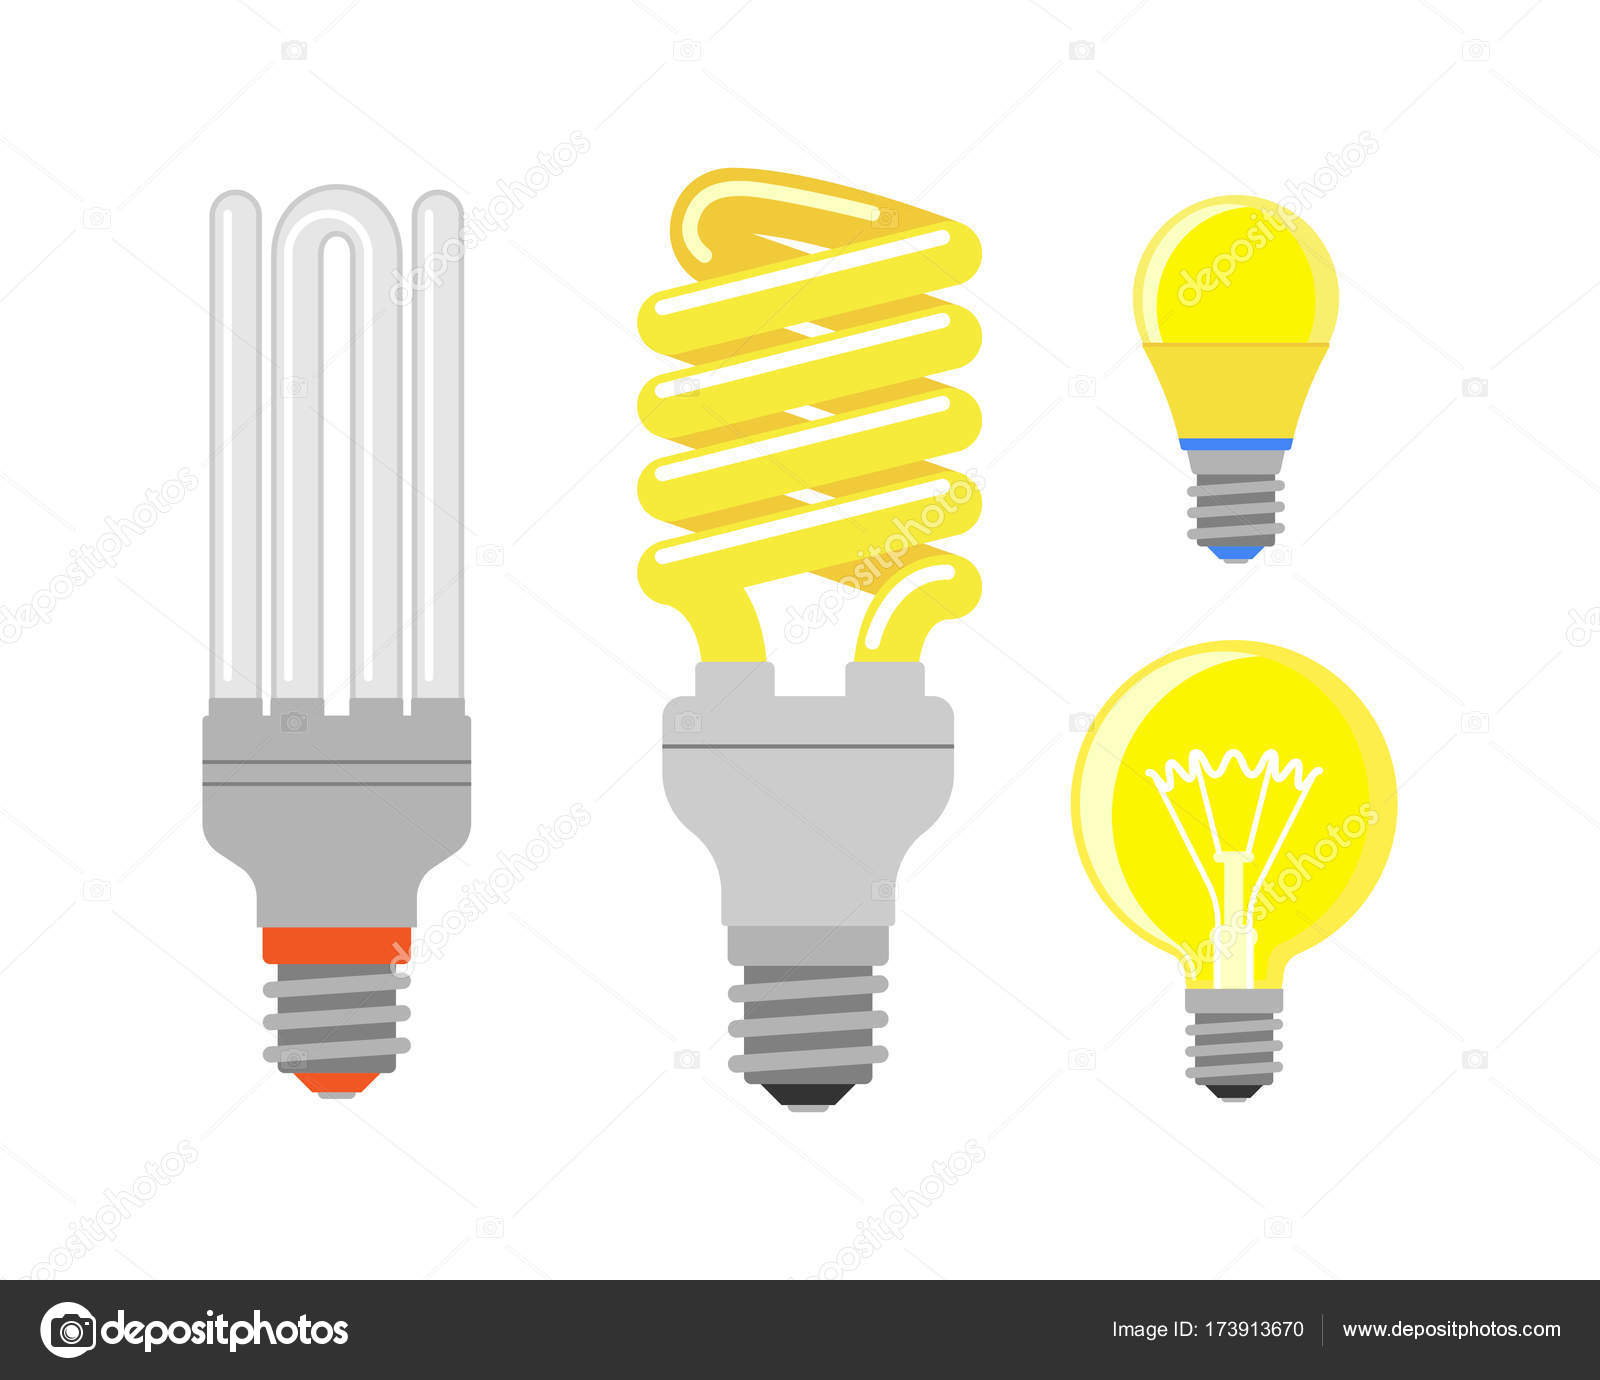 interior brainstorming illustration depositphotos light and lamp design electricity idea bright vector bulb cartoon flat isolated stock electric invention creative